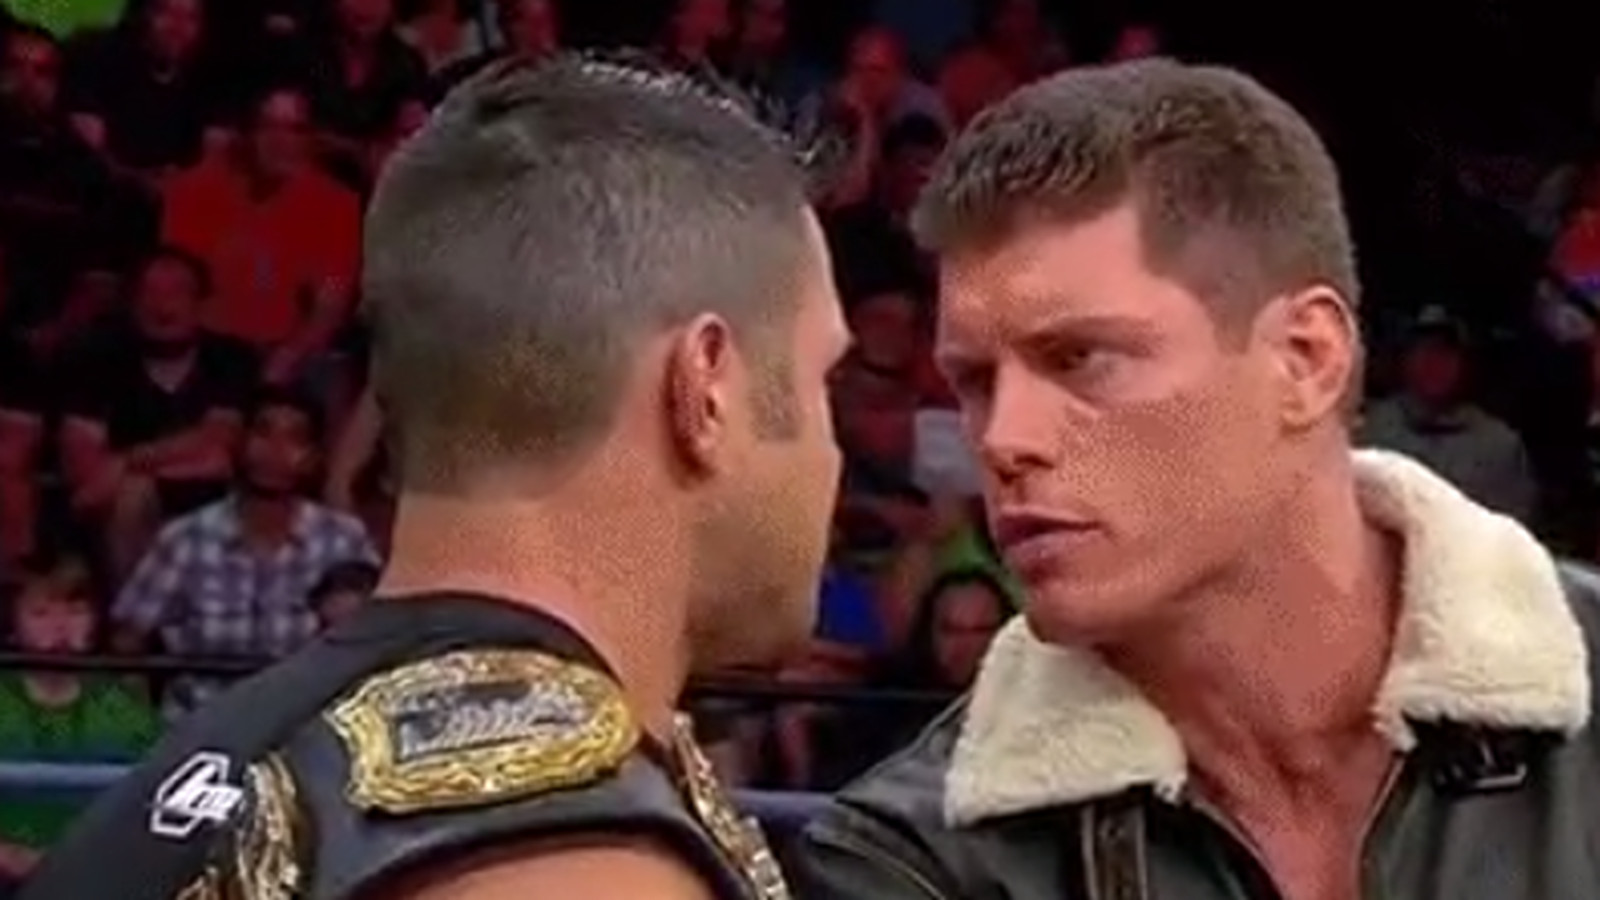 Well played, Cody (Rhodes)